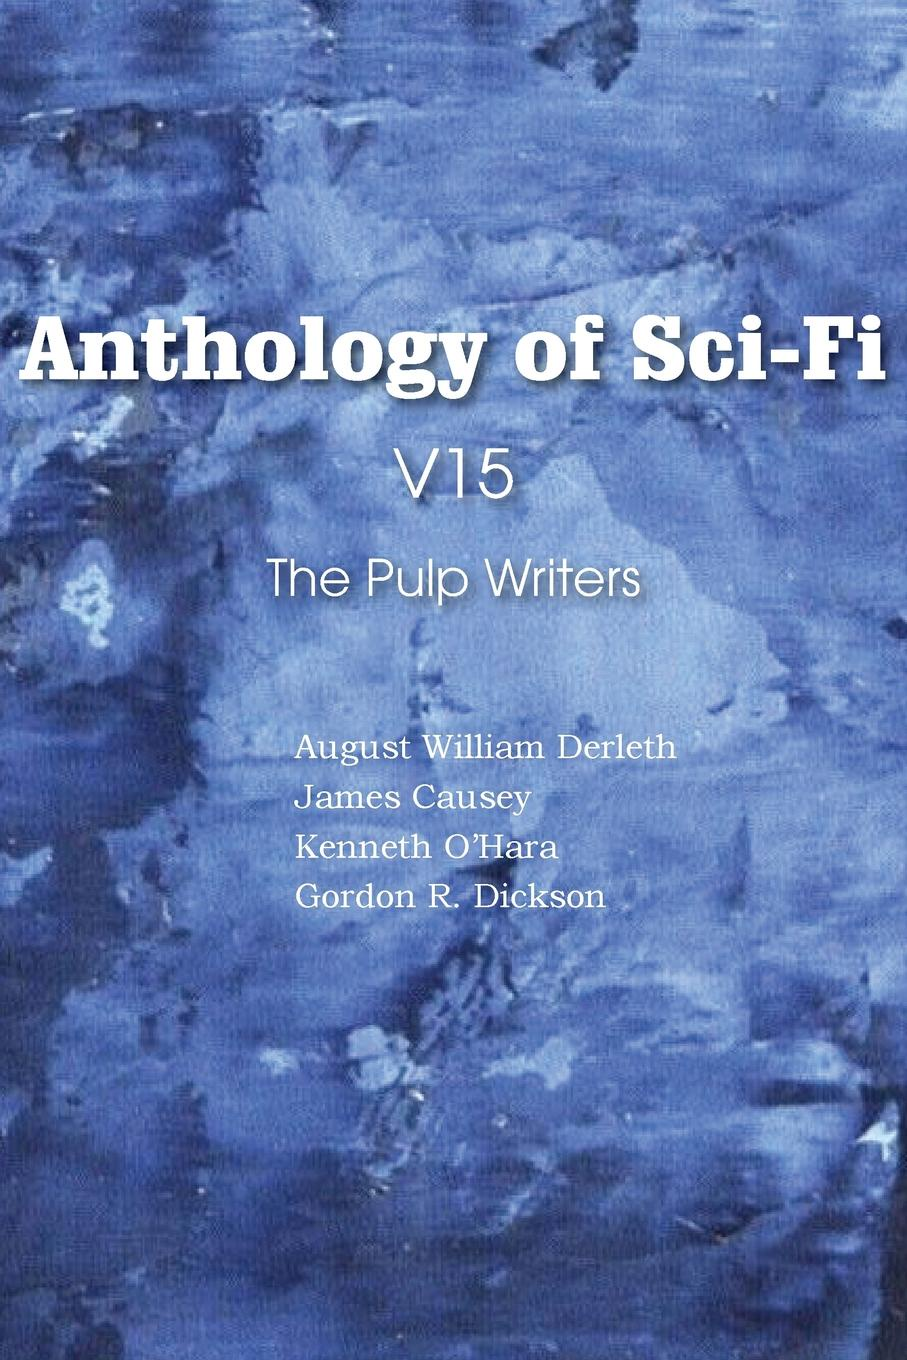 August William Derleth, Kenneth O'Hara, James Causey Anthology of Sci-Fi V15, the Pulp Writers алтэя масло черного тмина 100 мл